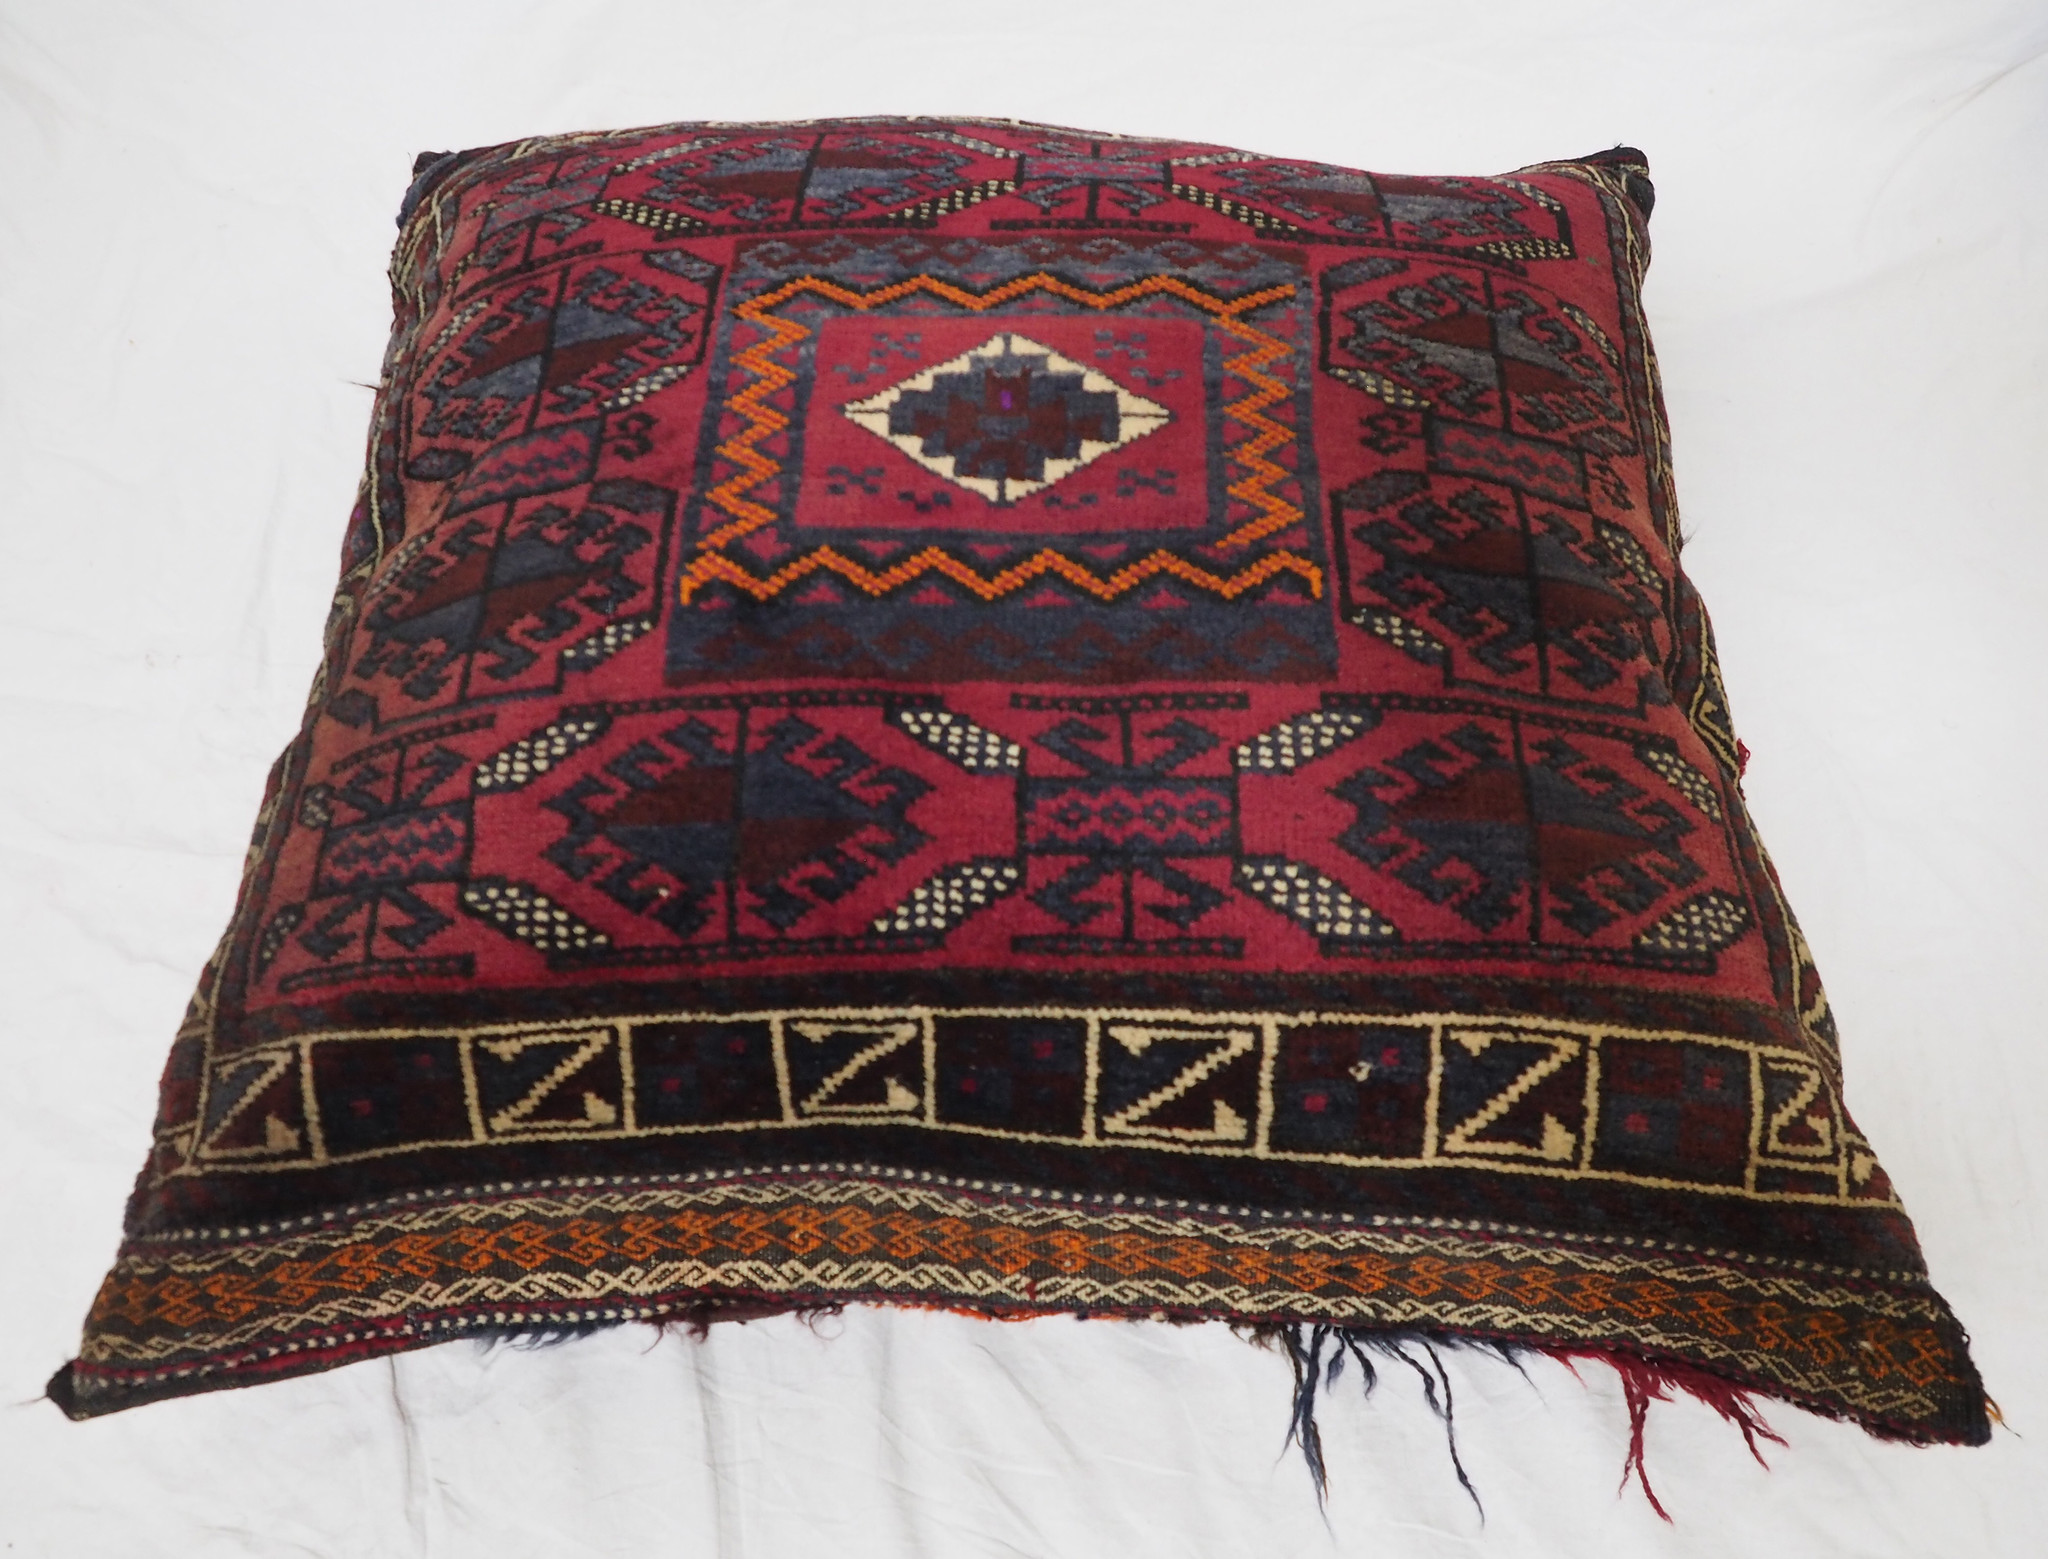 antique very rare Balochi nomadic carpet cushion orient nomad rug seat Bohemian Afghanistan pillow 21/5